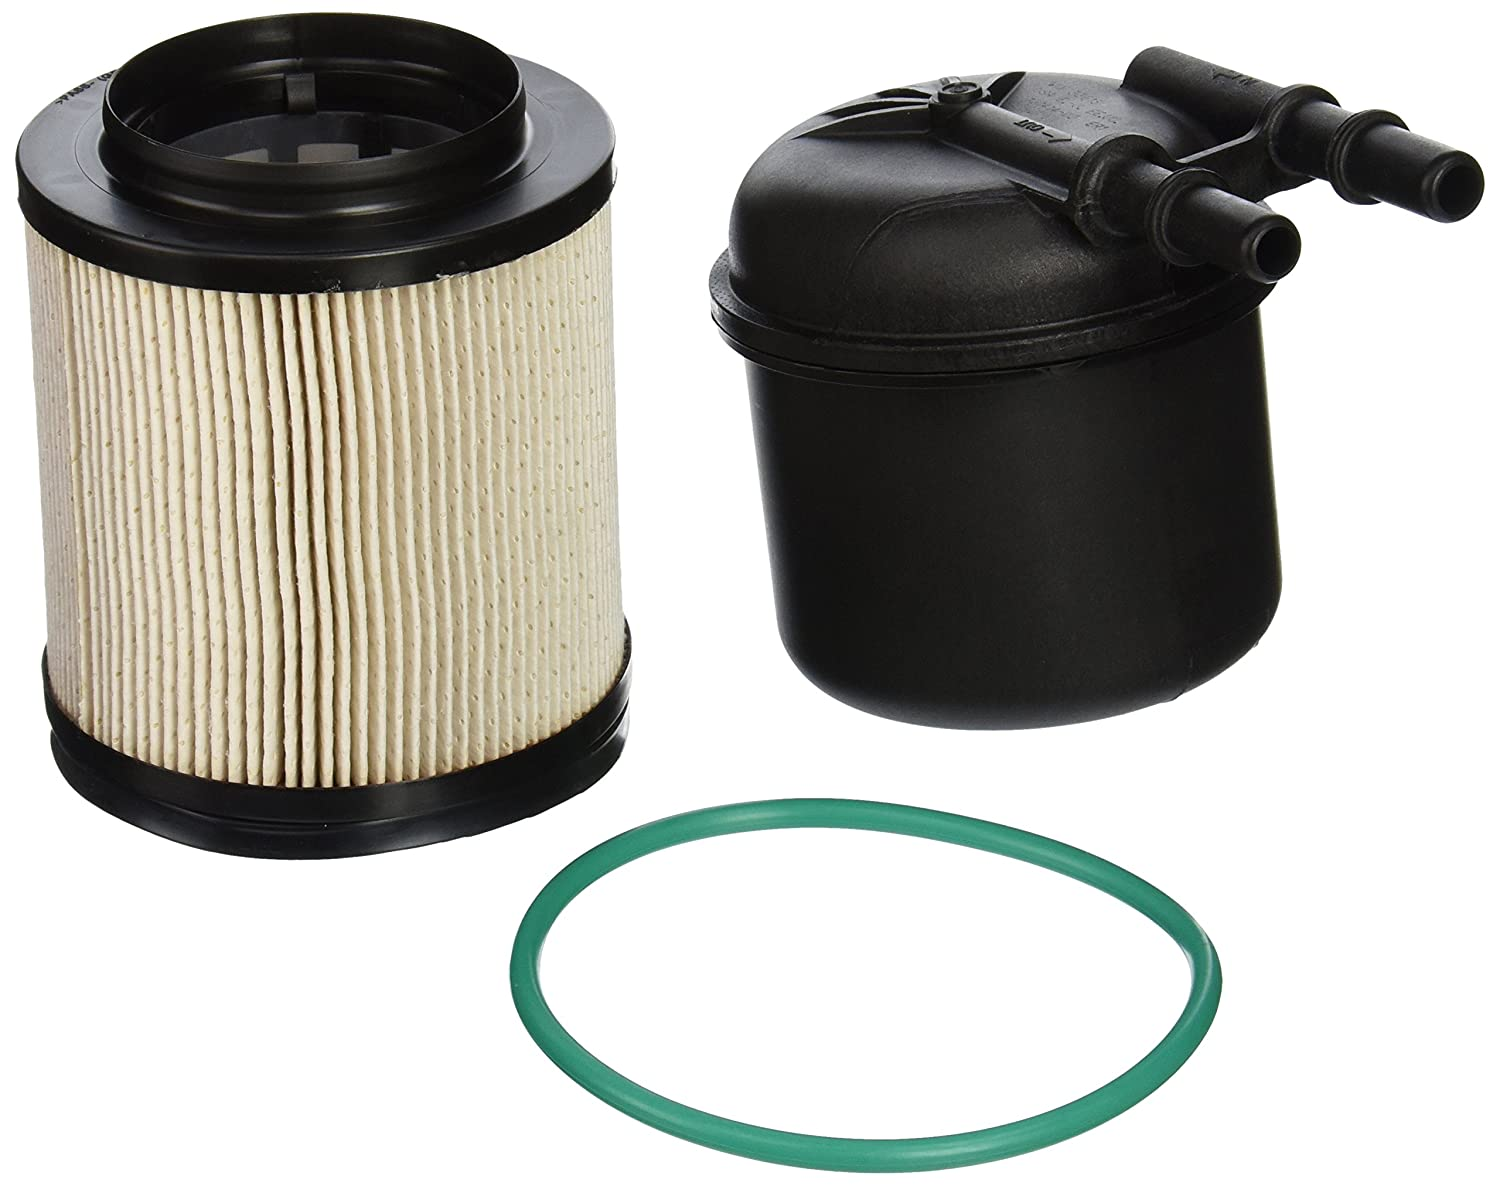 Wix Filters 33615 Heavy Duty Cartridge Fuel Metal Free Filter On 2012 F250 Pack Of 1 Automotive